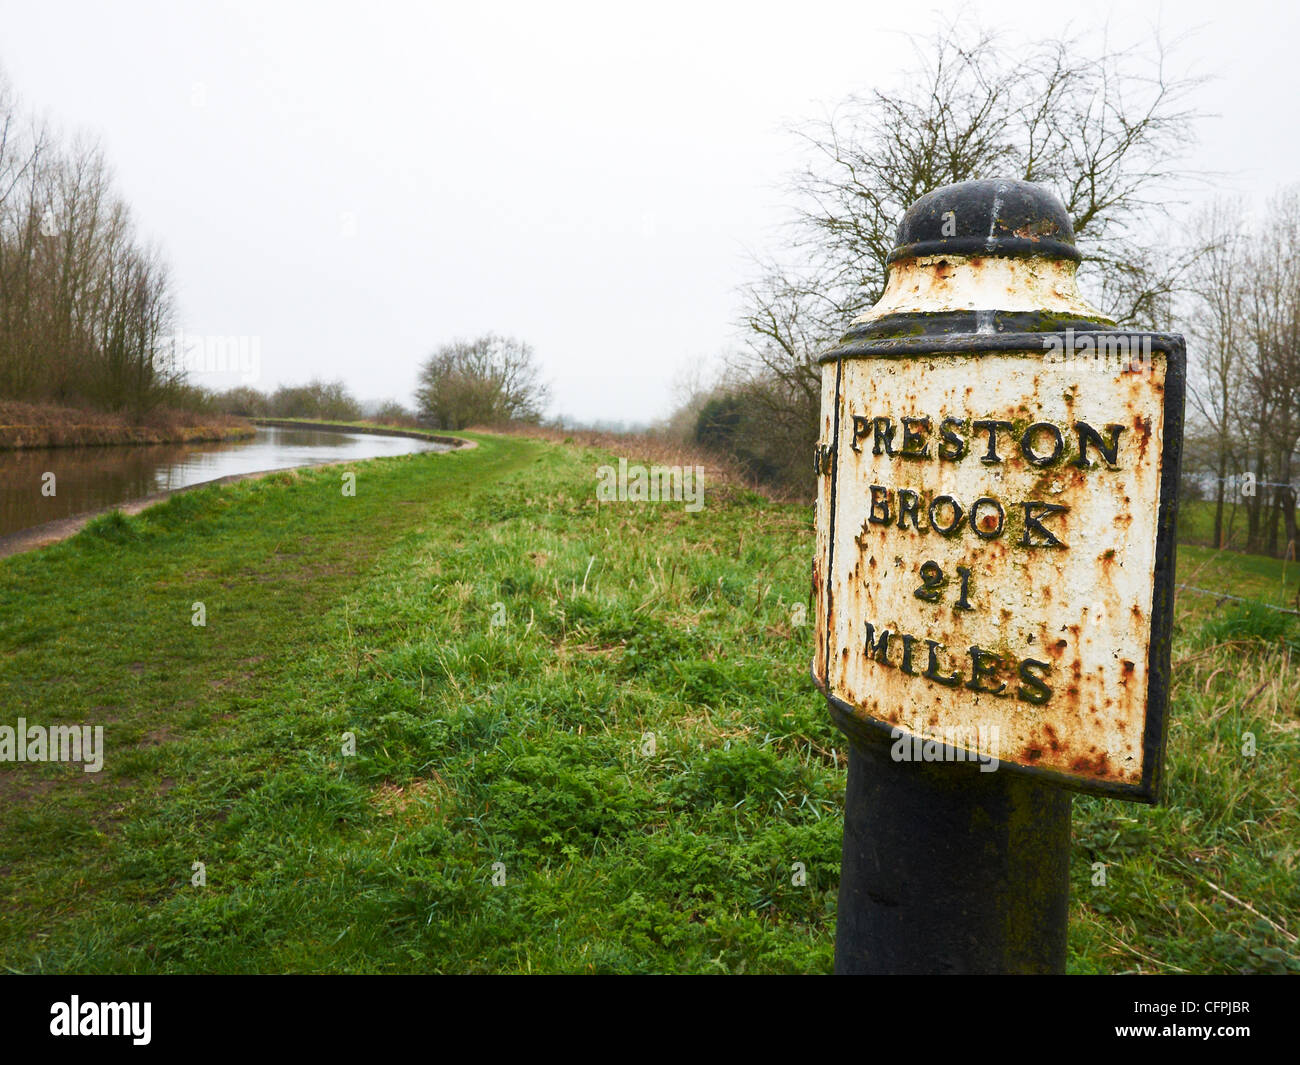 Signpost on the Trent and Mersey Canal near Elworth Sandbach UK - Stock Image